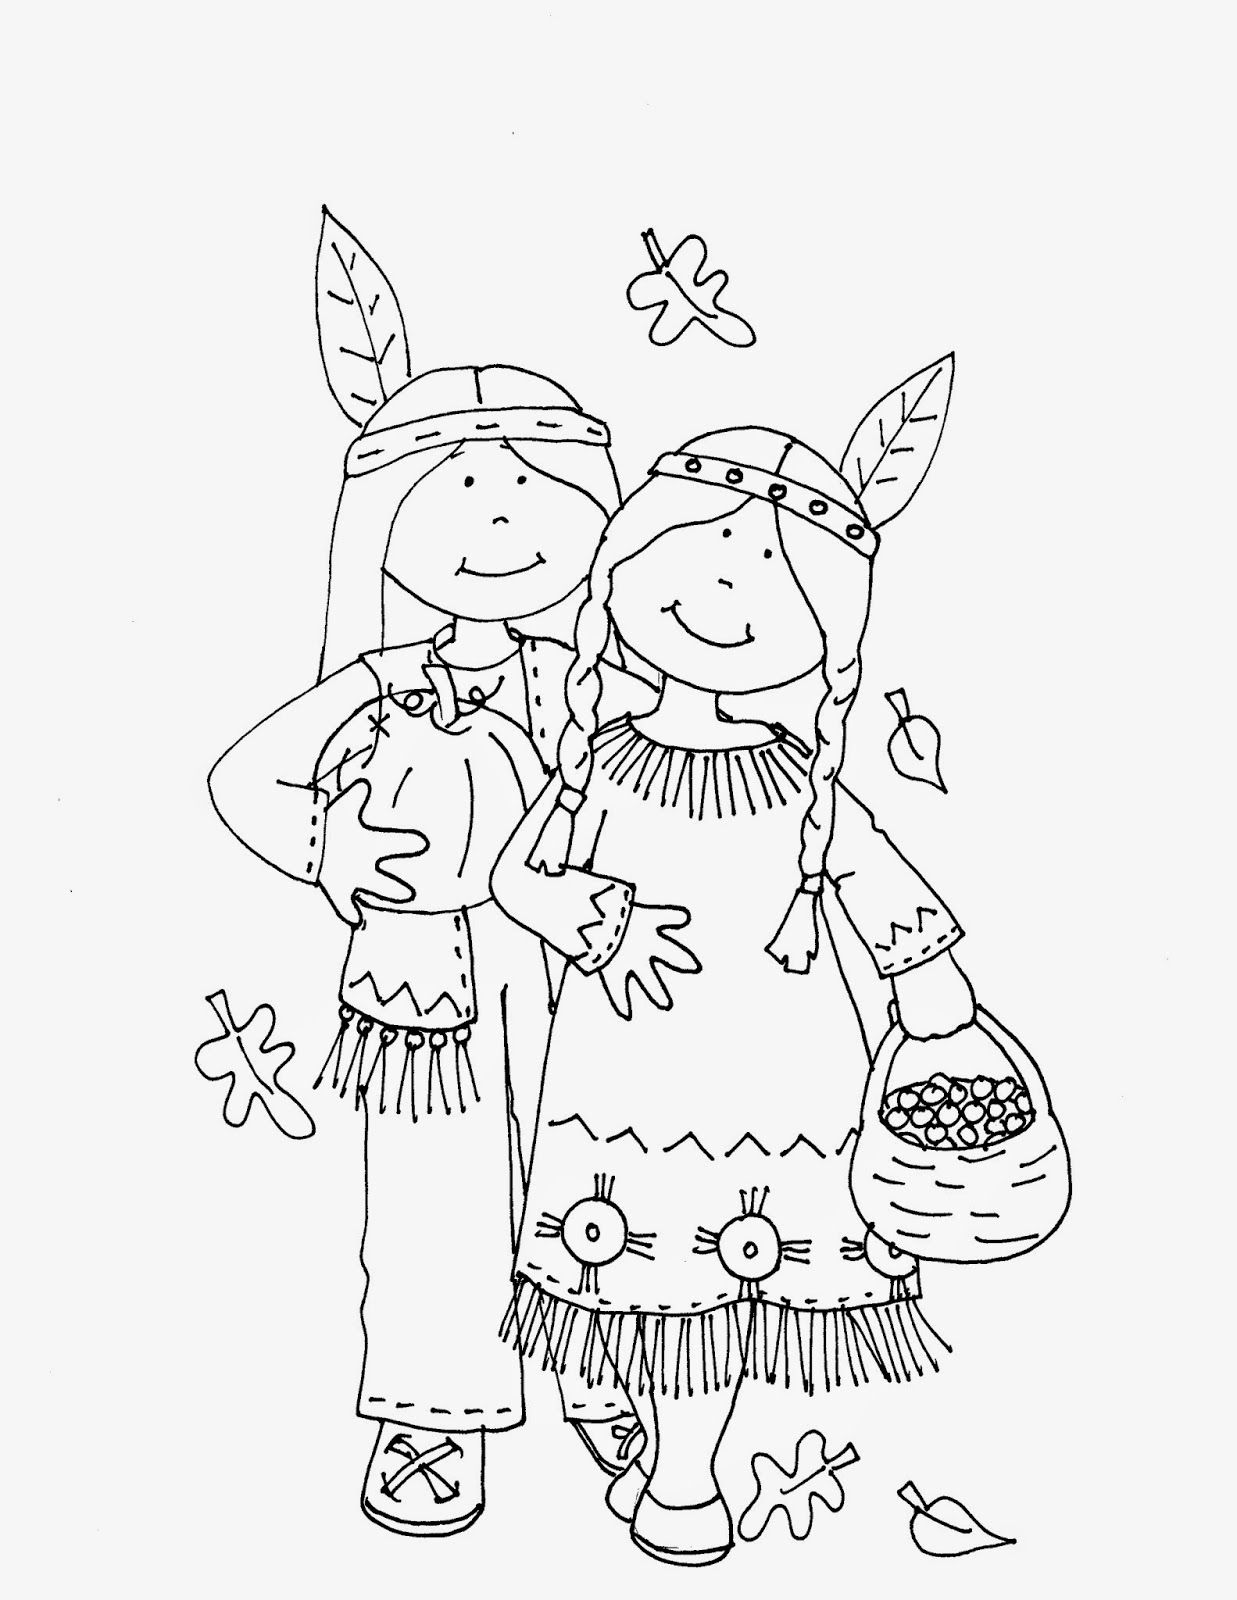 Free Dearie Dolls Digi Stamps: Thanksgiving Indians | Dearie Dolls ...